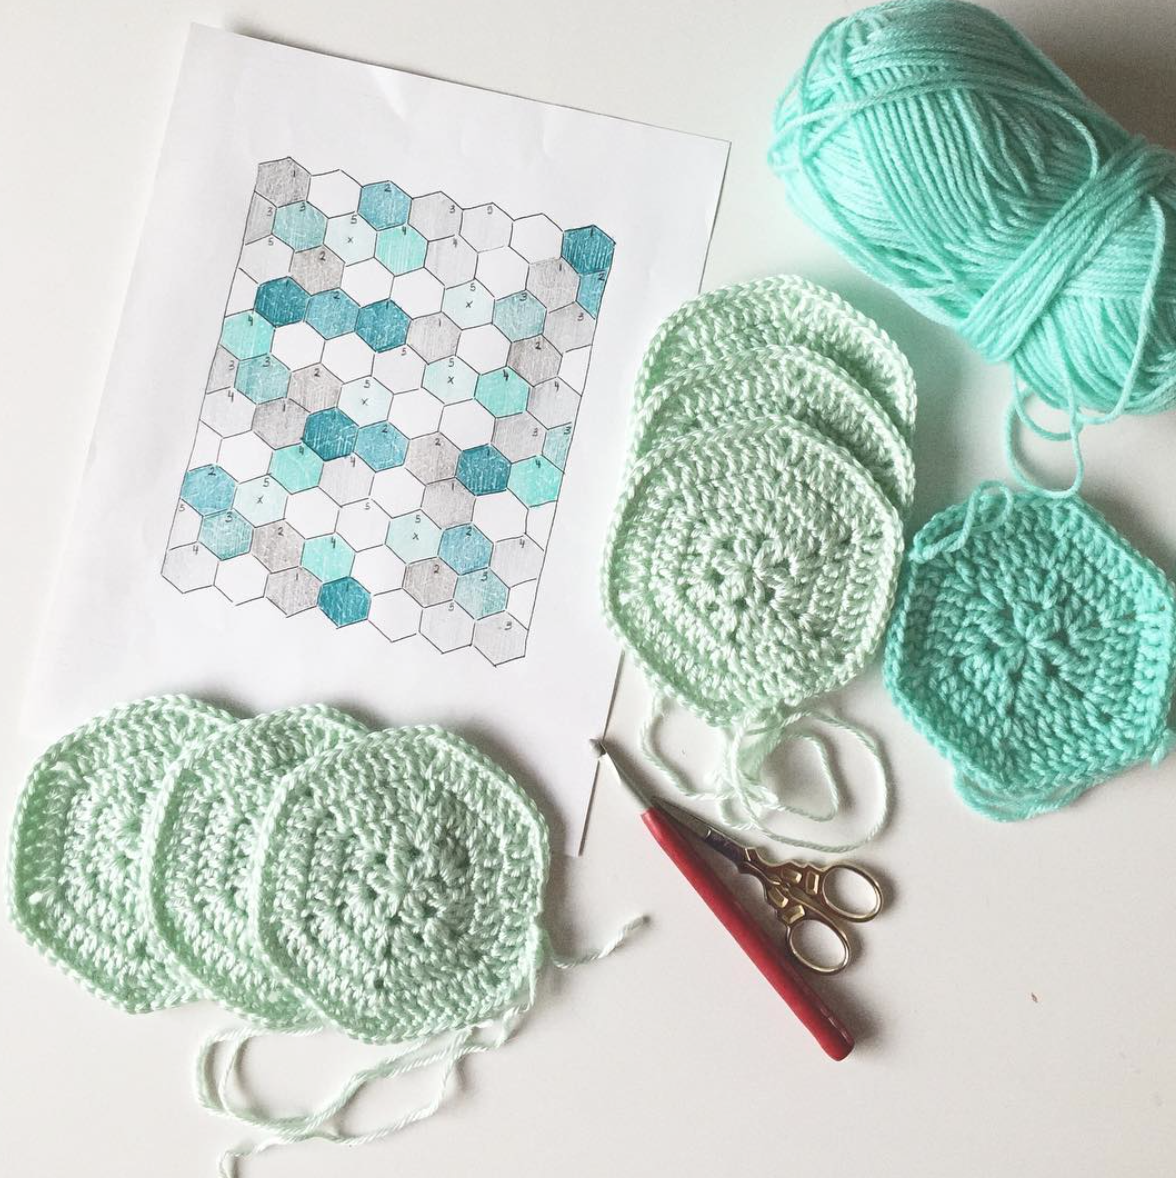 crochet color planning with pencils